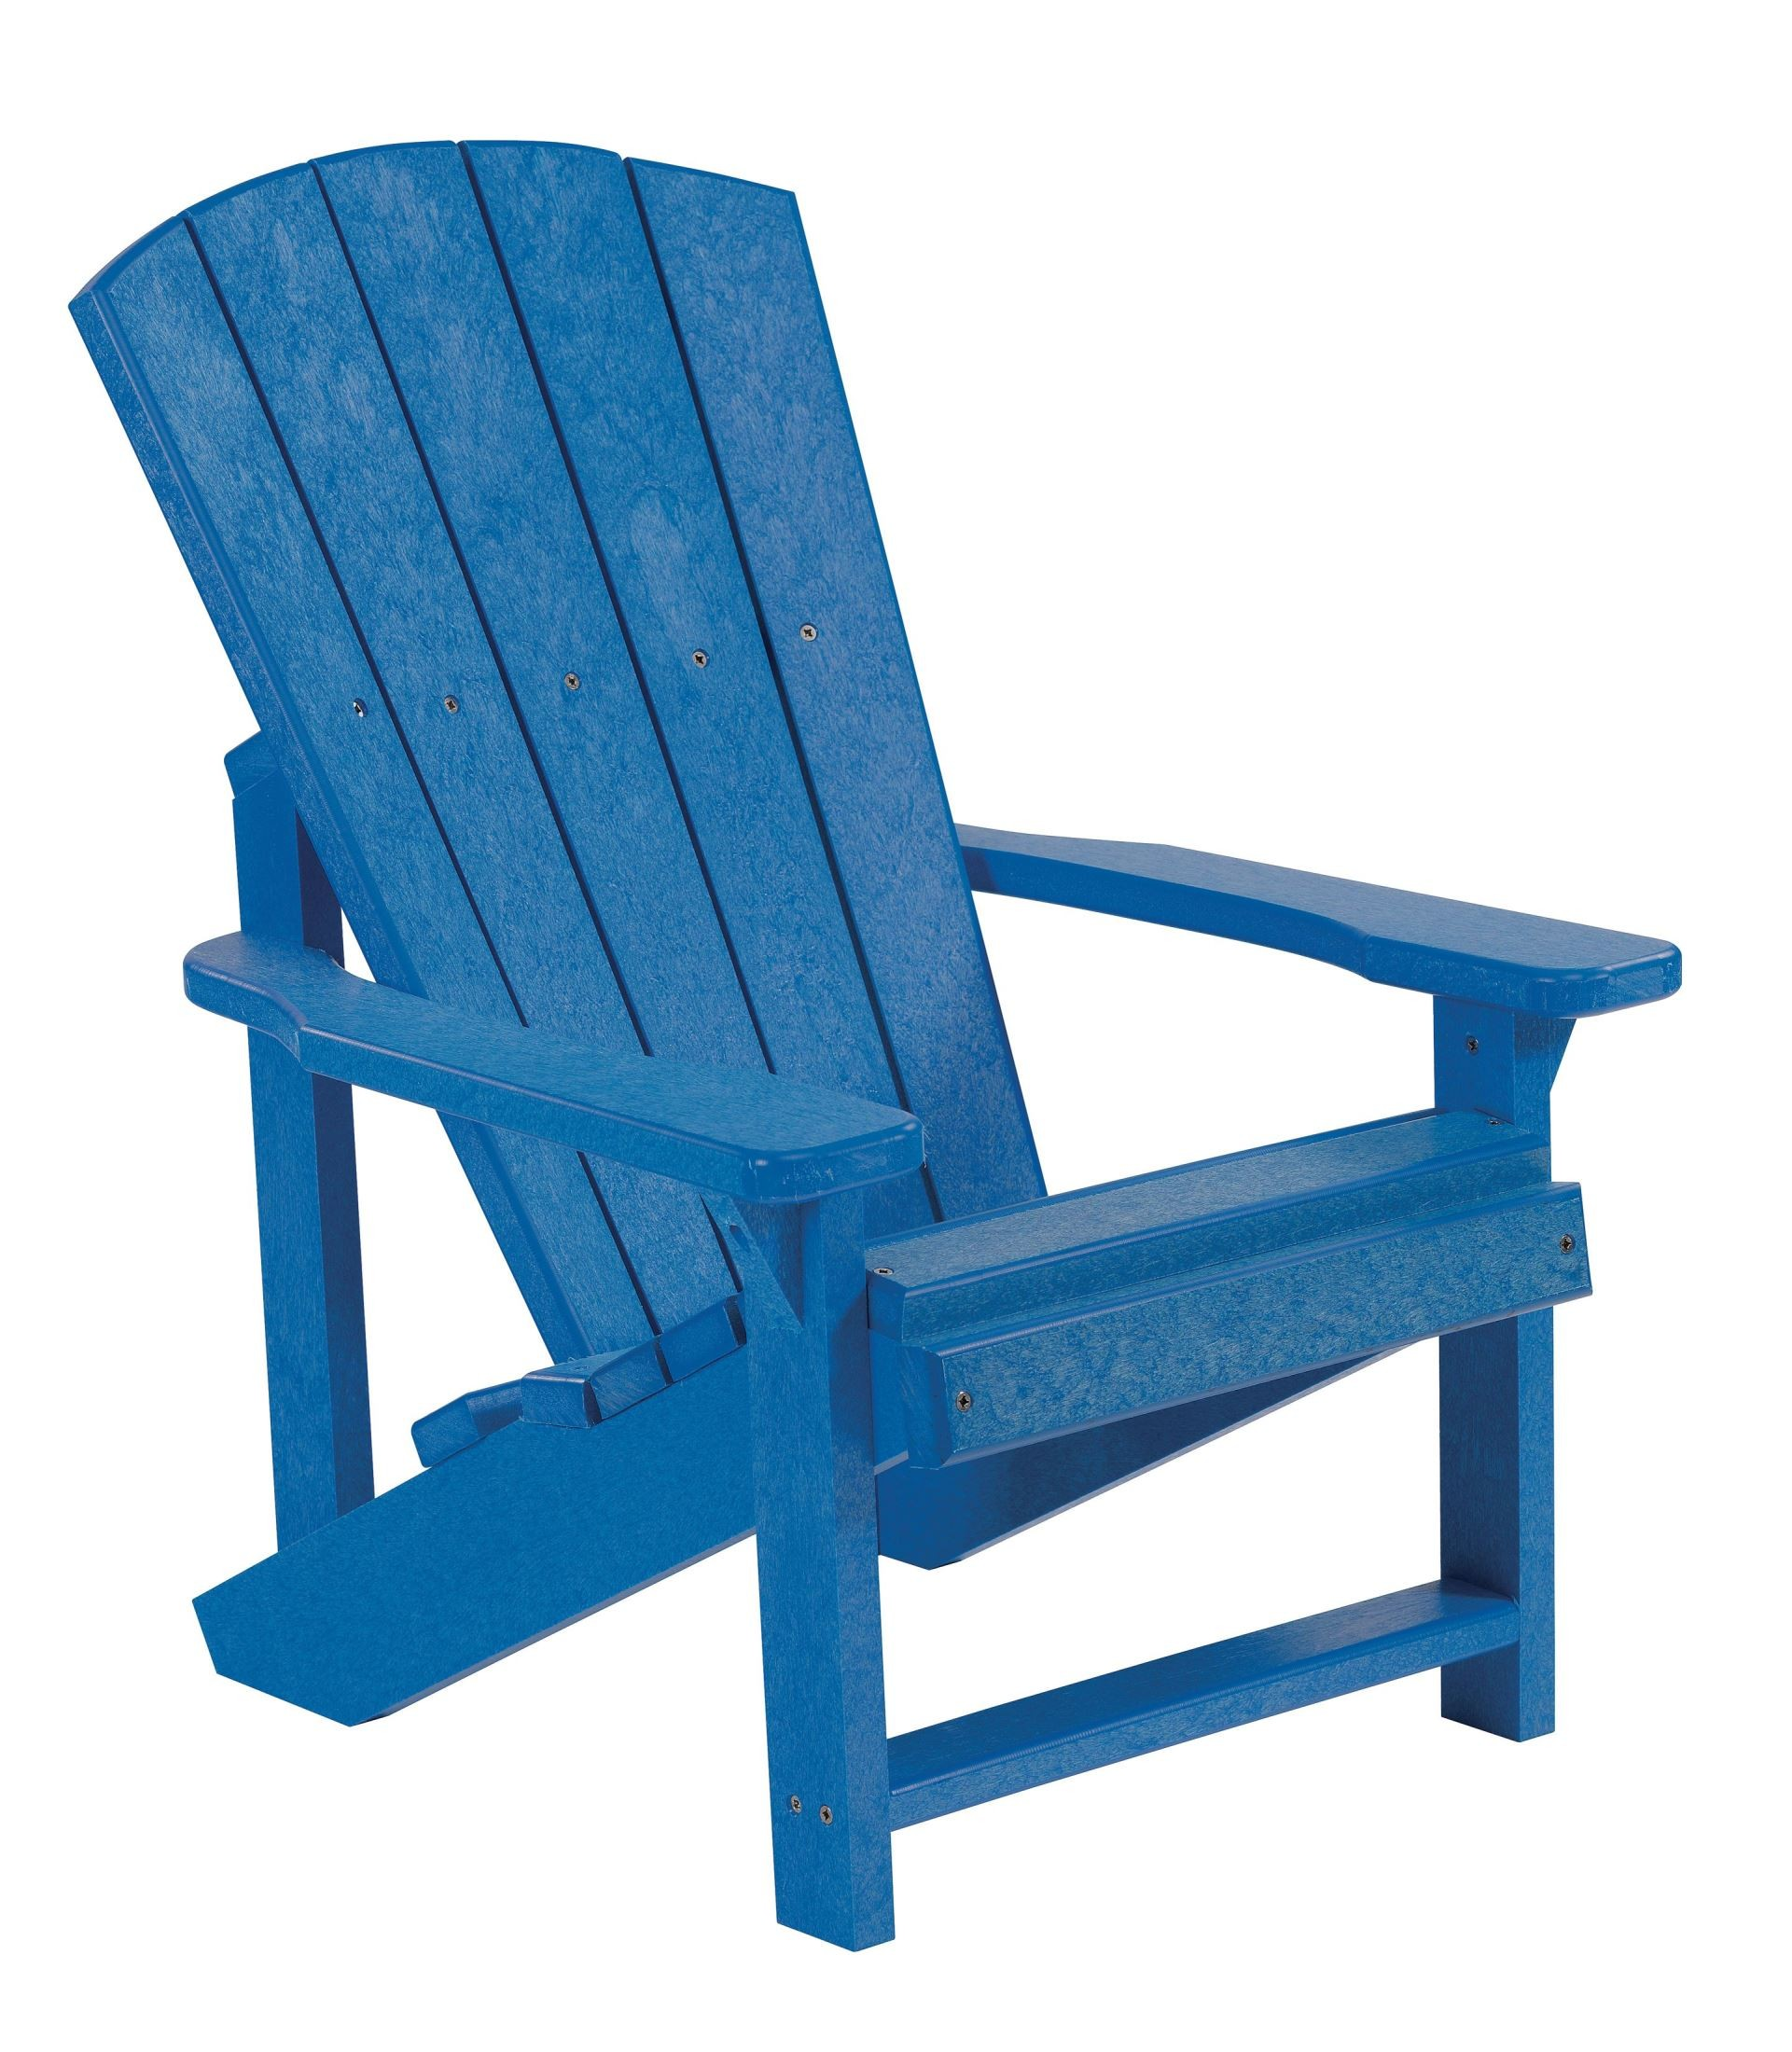 Generations Blue Kids Adirondack Chair From Cr Plastic